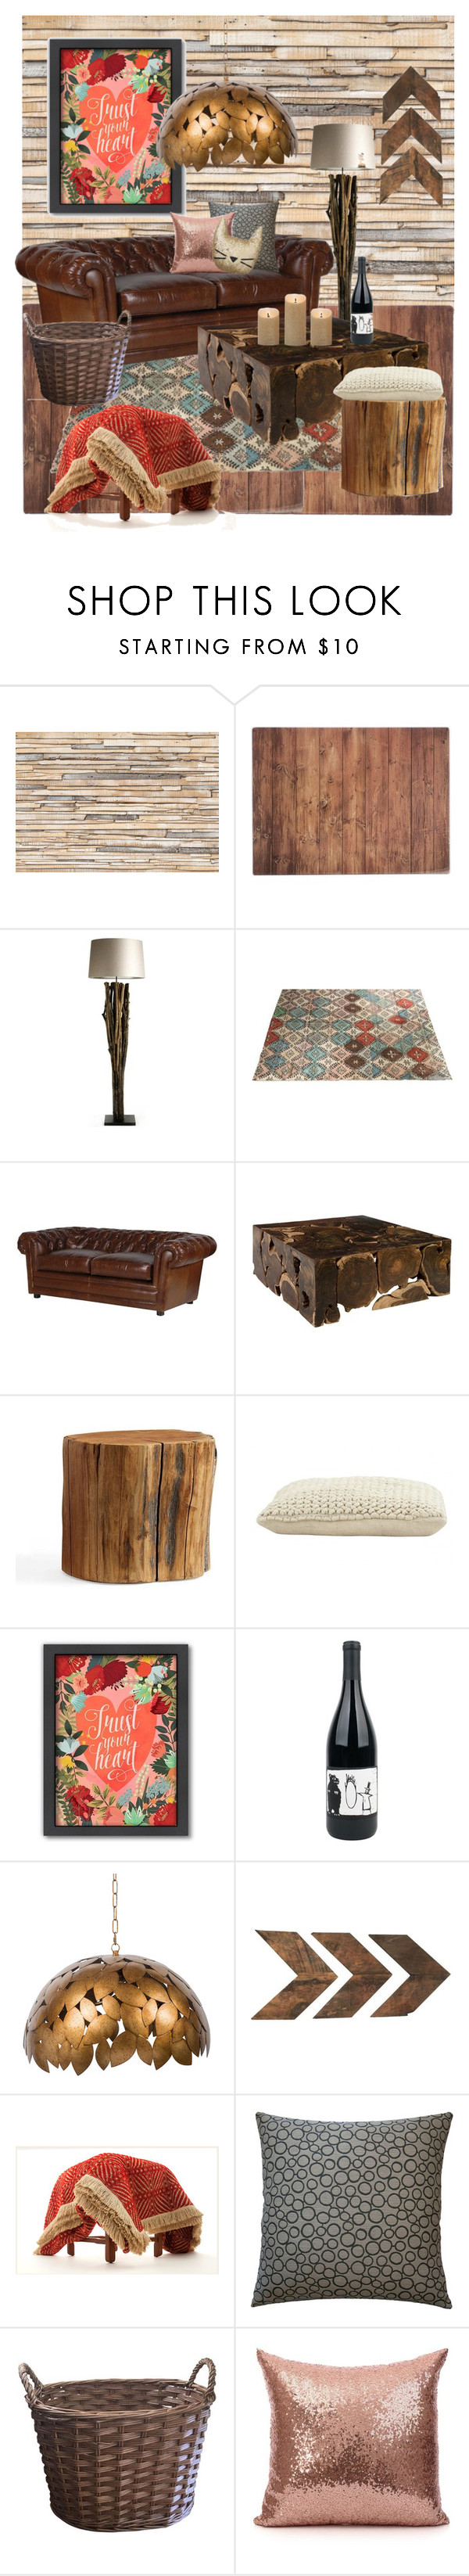 """""""Happy home 🦊"""" by huxmay ❤ liked on Polyvore featuring interior, interiors, interior design, home, home decor, interior decorating, Brewster Home Fashions, Typhoon, Pottery Barn and Jayson Home"""